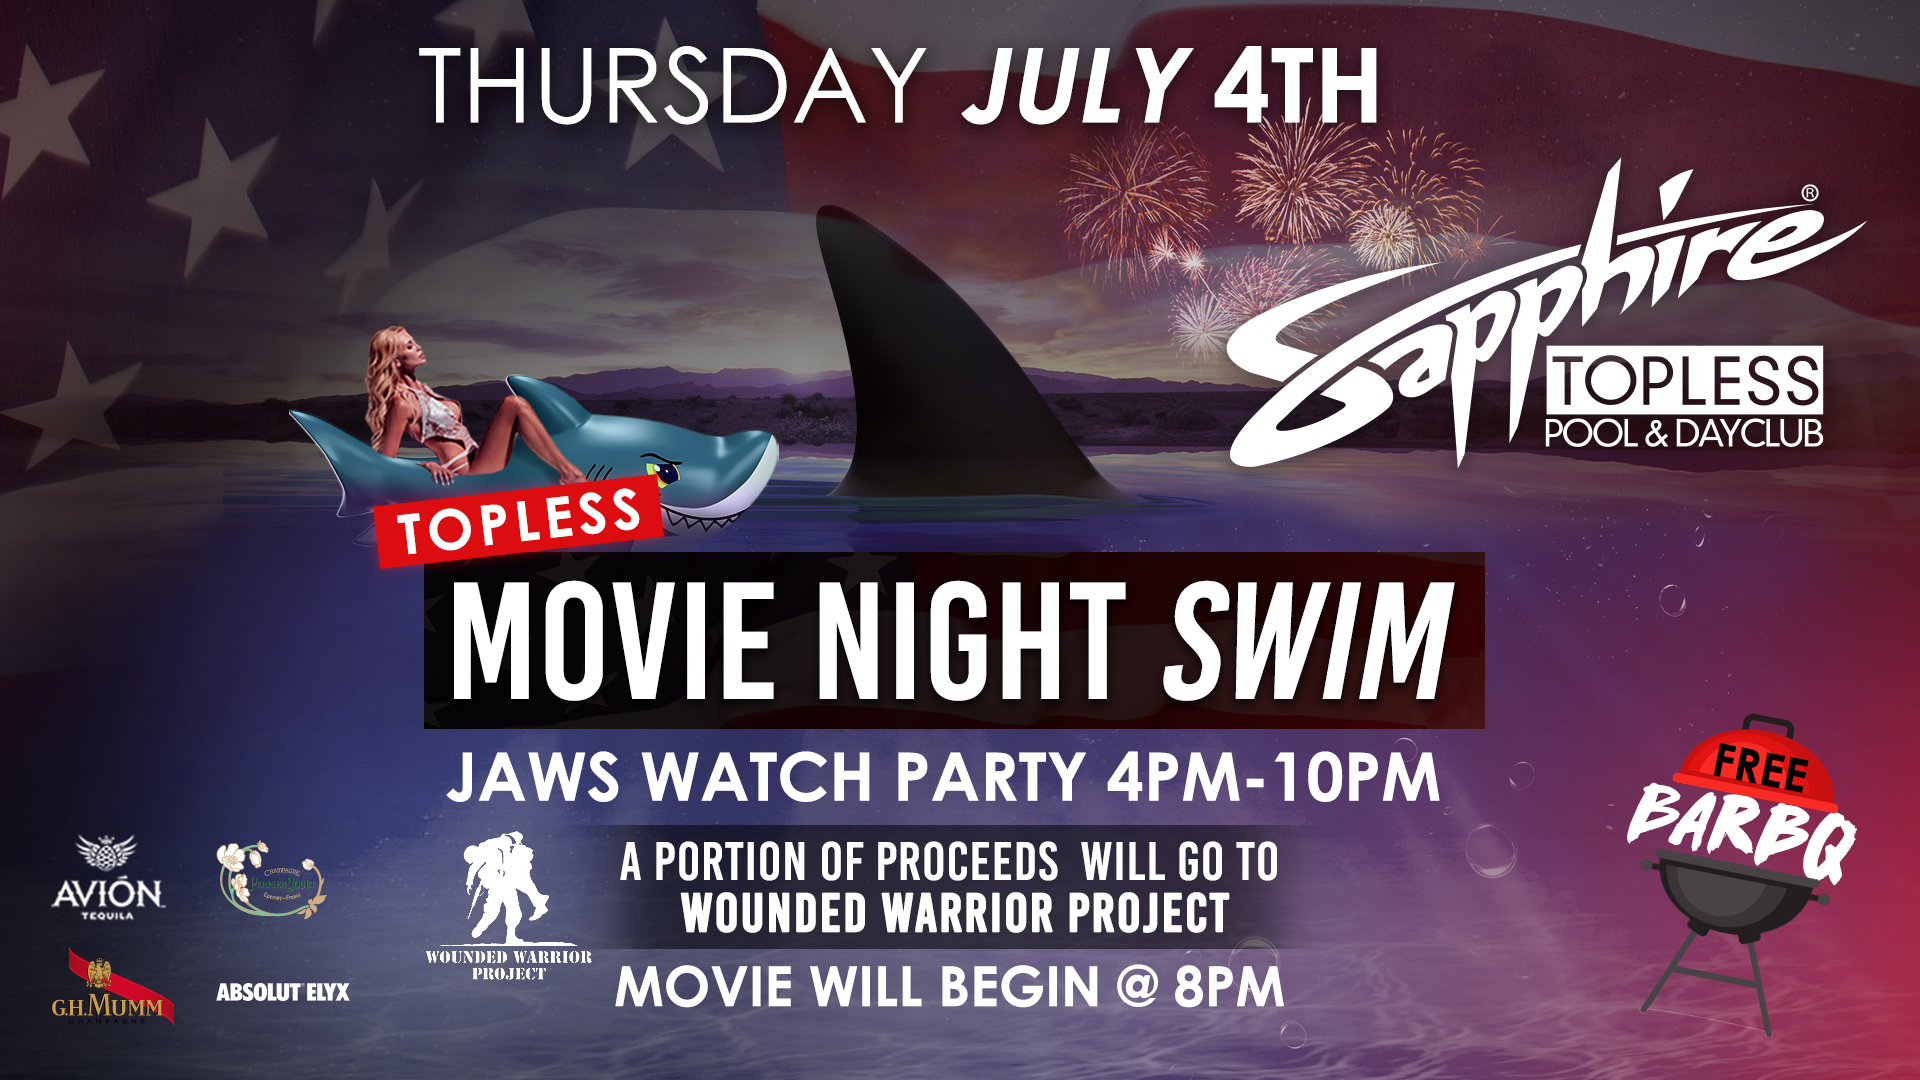 Topless Movie Night Swim – JAWS Watch Party